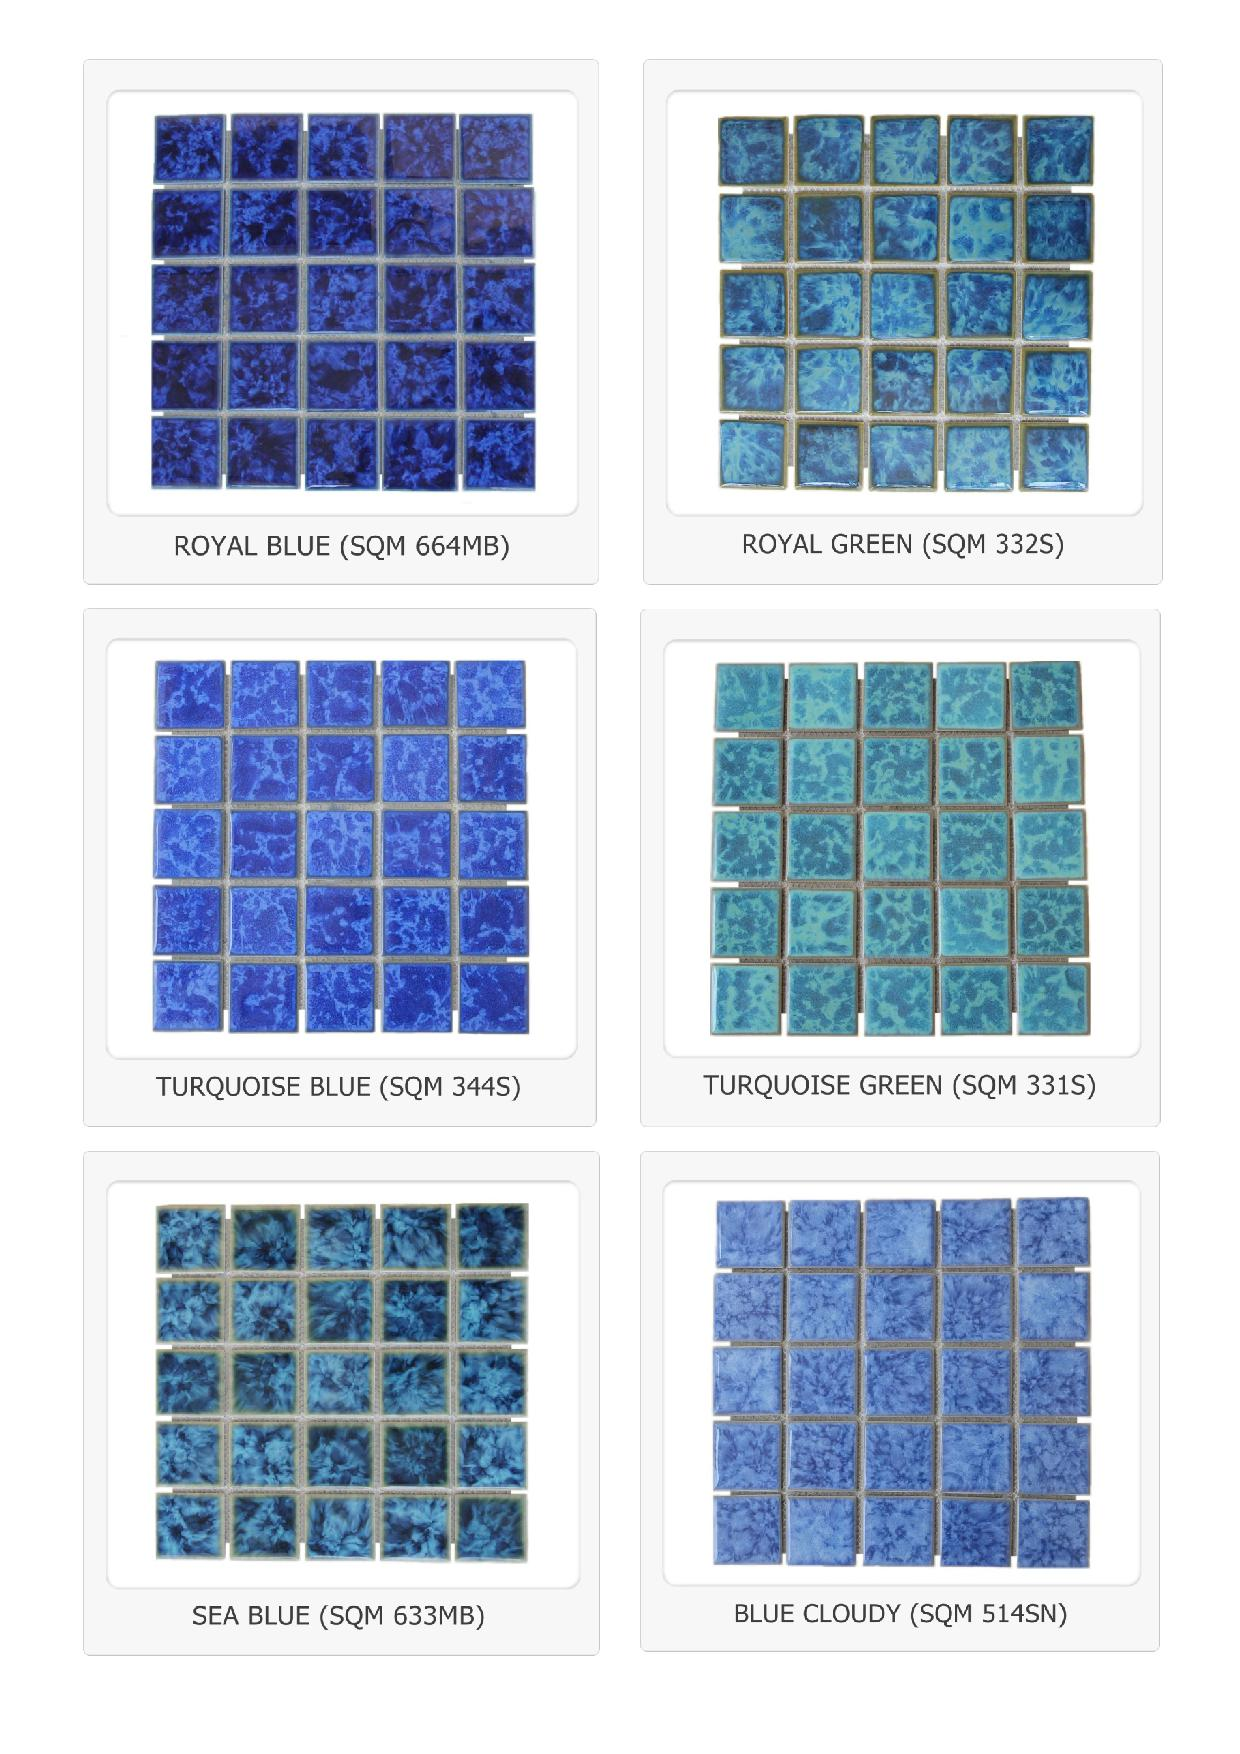 Bali Glazed Ceramic Mosaic Swimming Pool Tiles Indonesia Ceramic Tile Mass Kuda Laut Glossy Cramic Tile